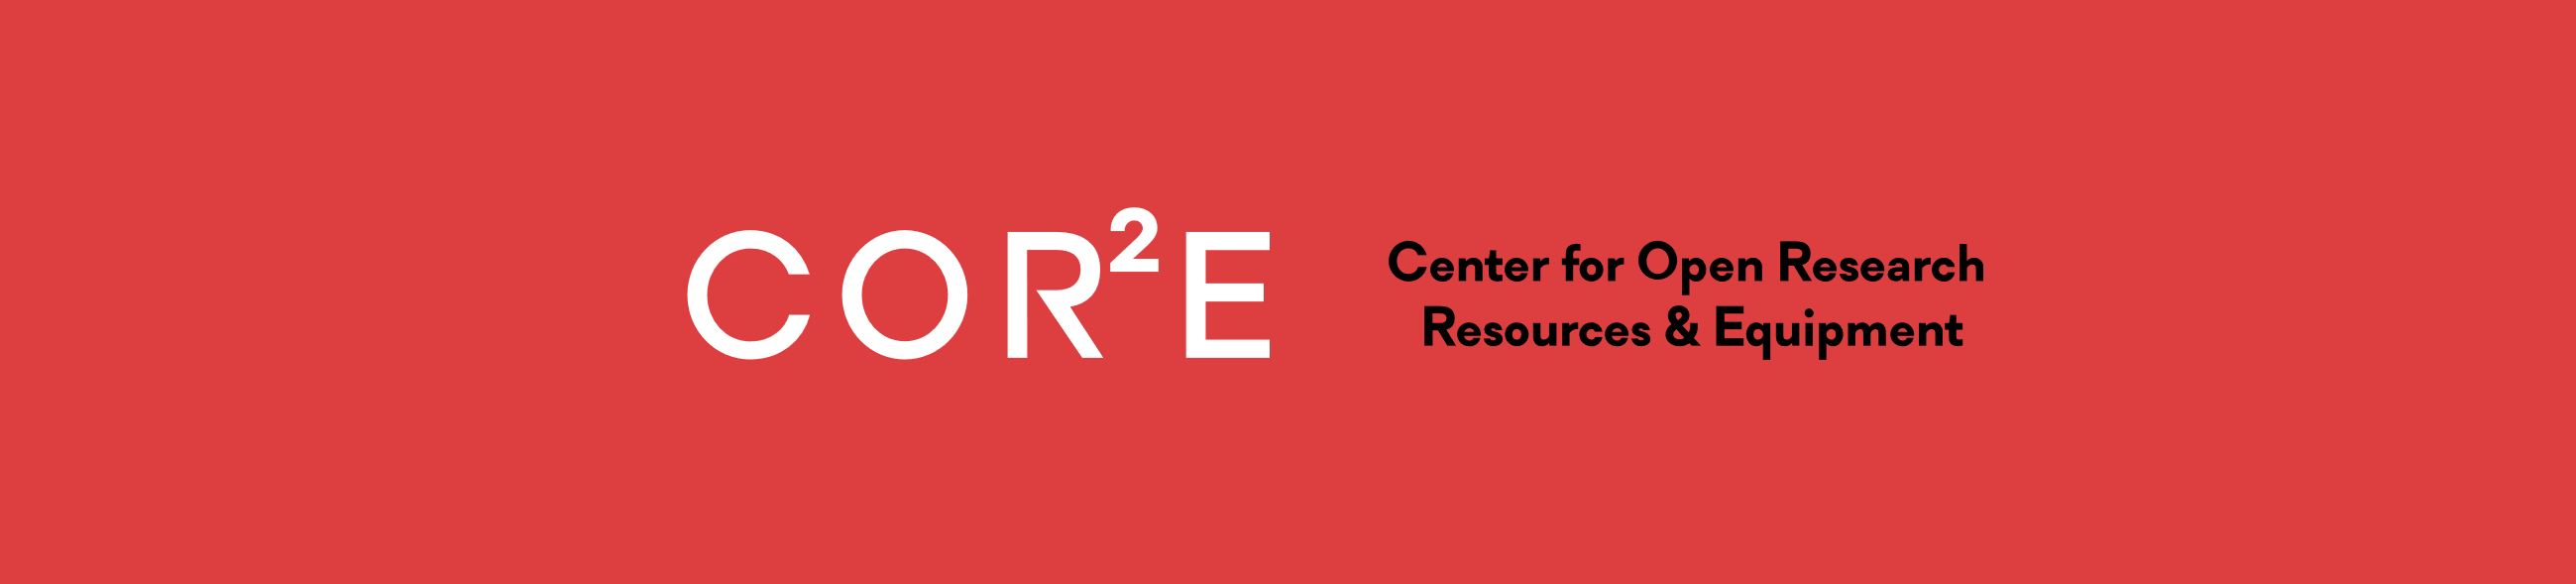 Center for Open Research Resources & Equipment